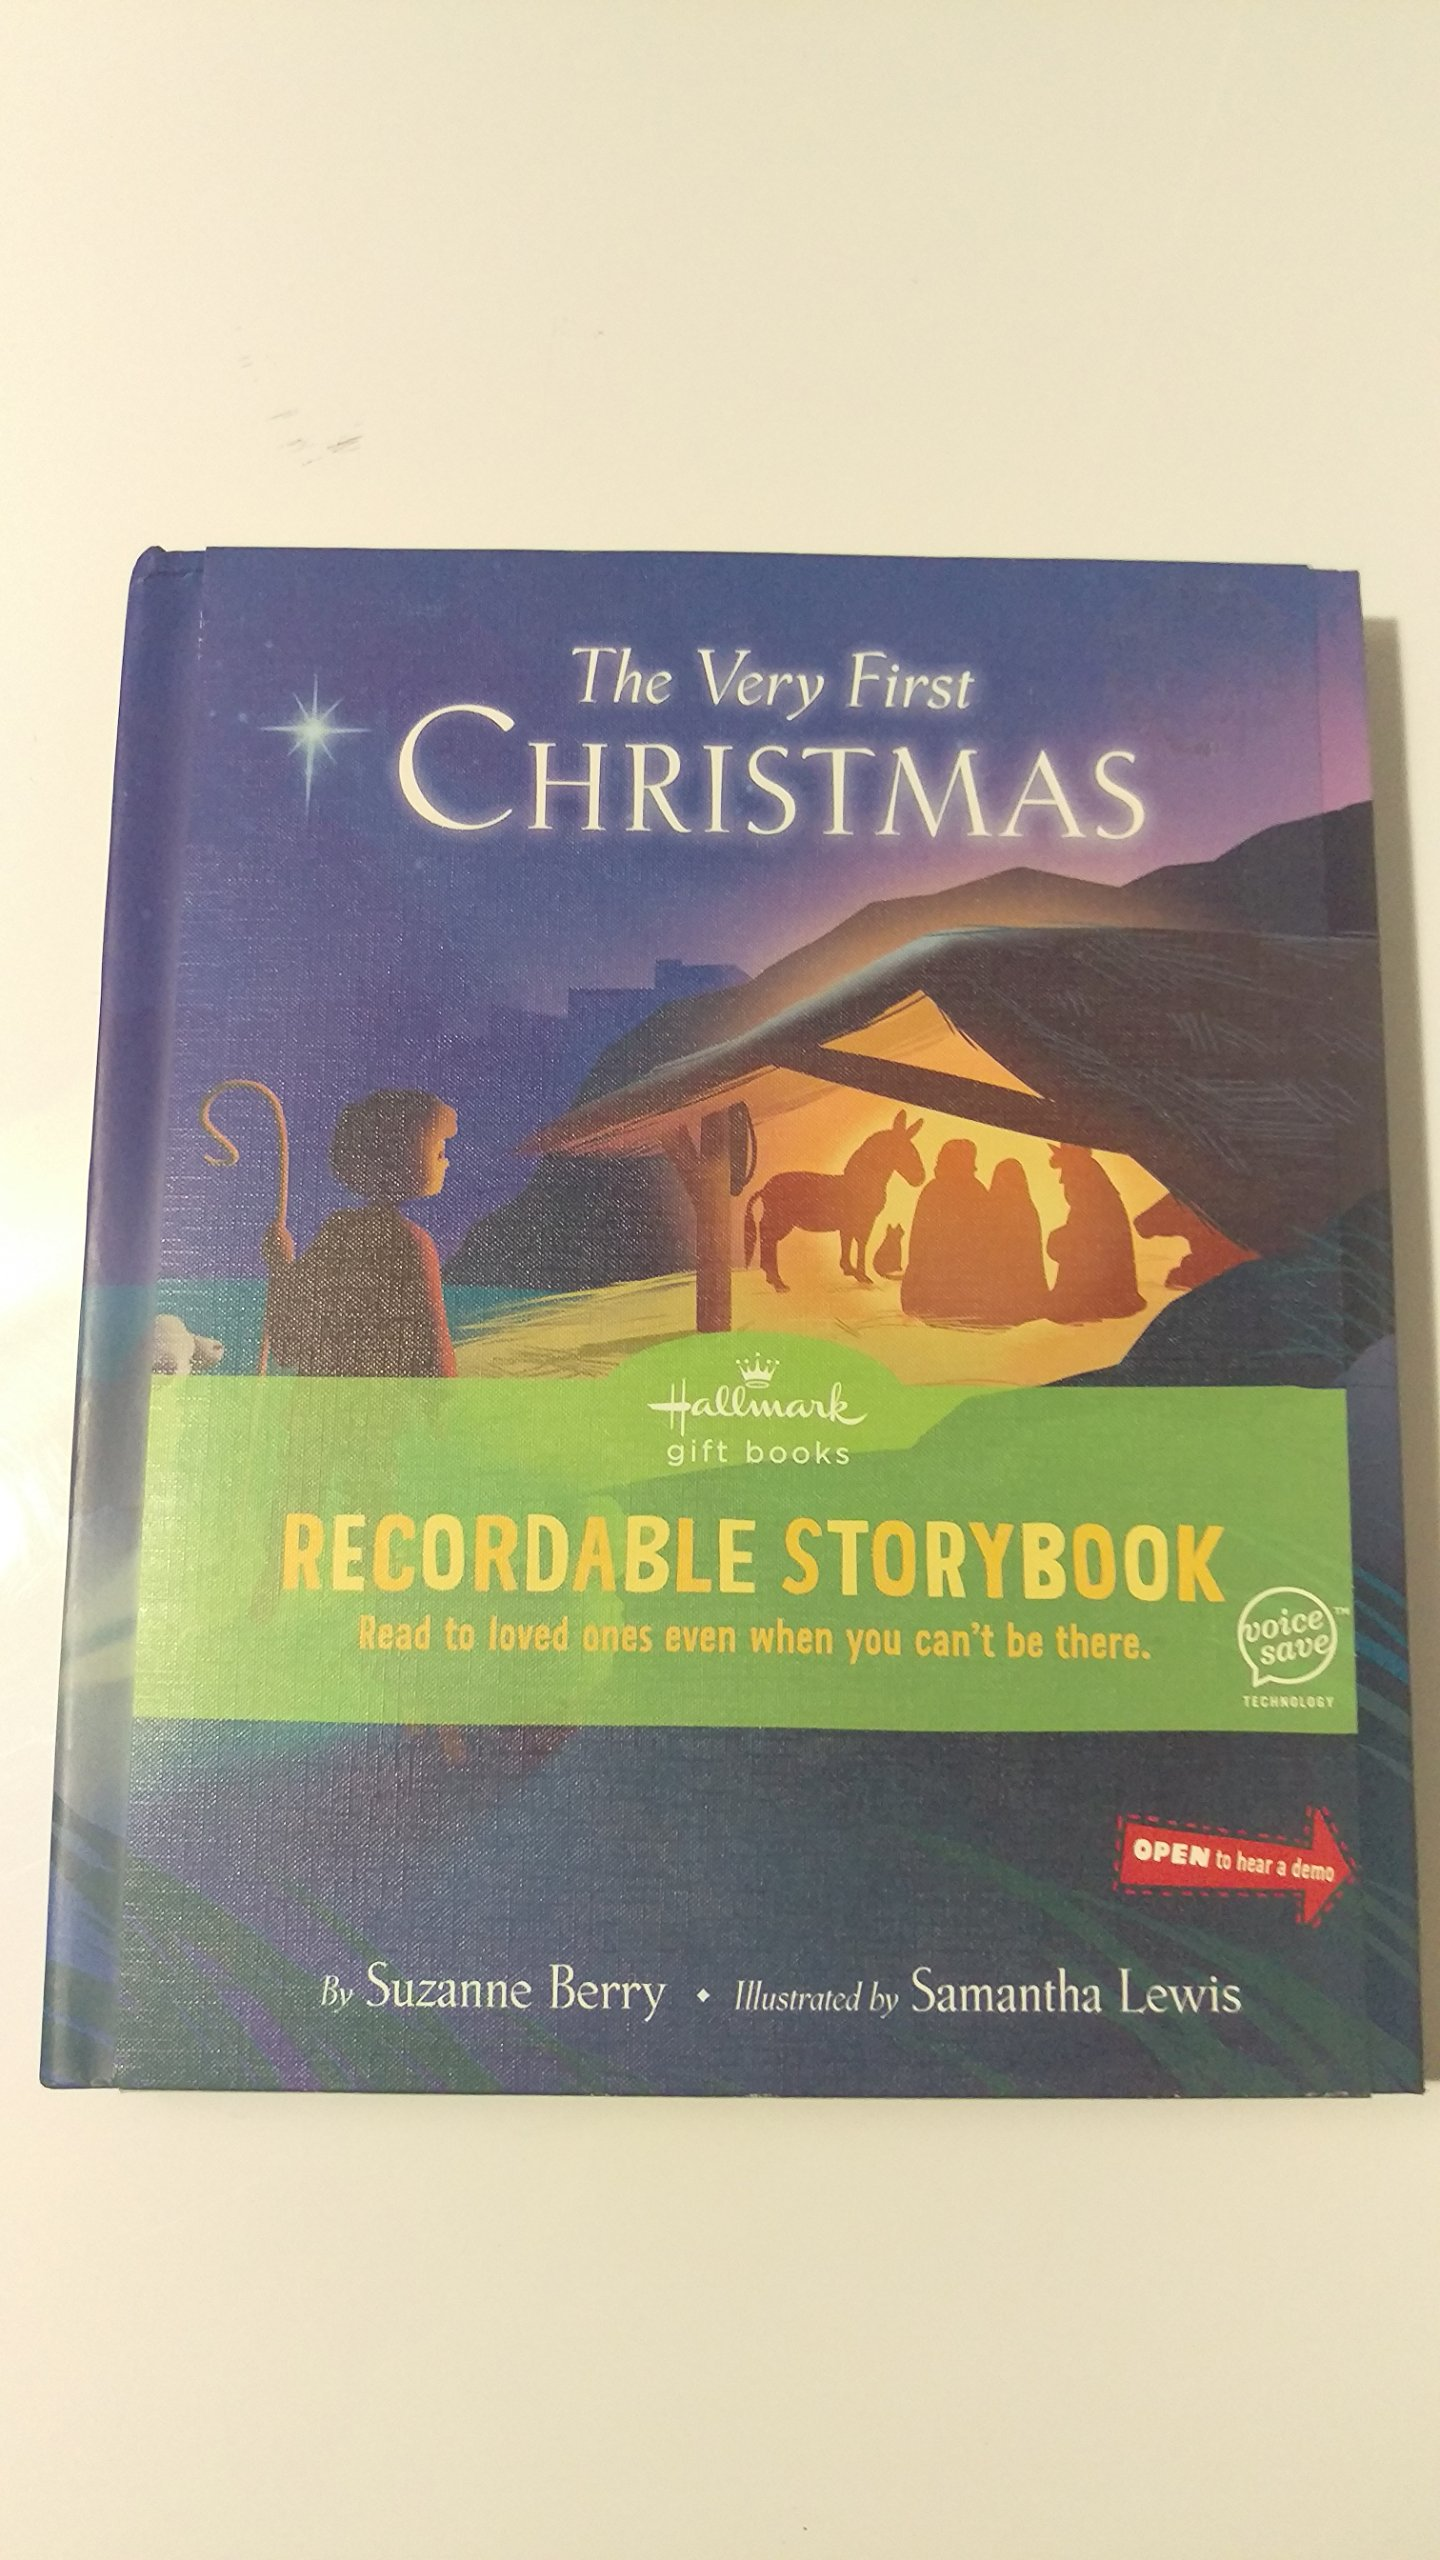 The Very First Christmas Hallmark Recordable Storybook: Suzanne Berry,  Samantha Lewis: Amazon: Books